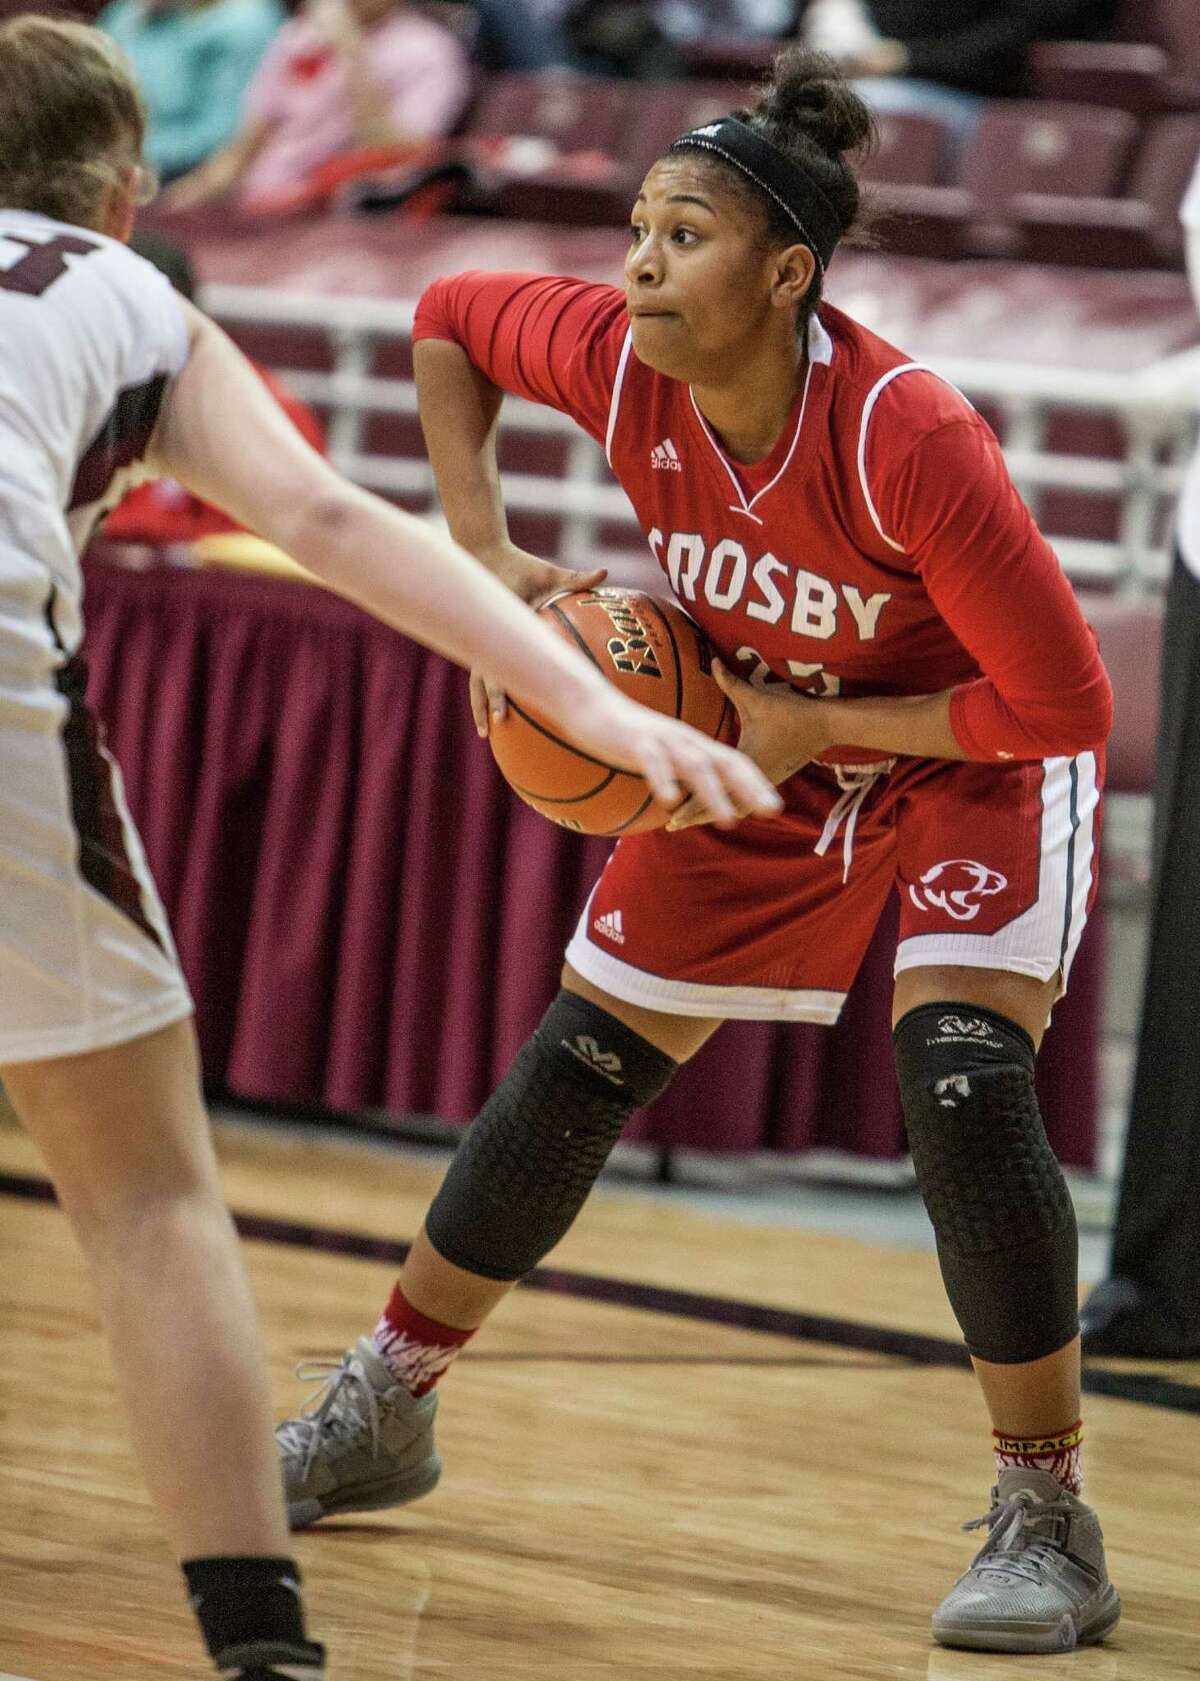 Amaya Armstrong of Crosby looks to pass during a game Friday February 26, 2016. Magnolia played Crosby in the girls basketball Region III semifinals at the Campbell Center.